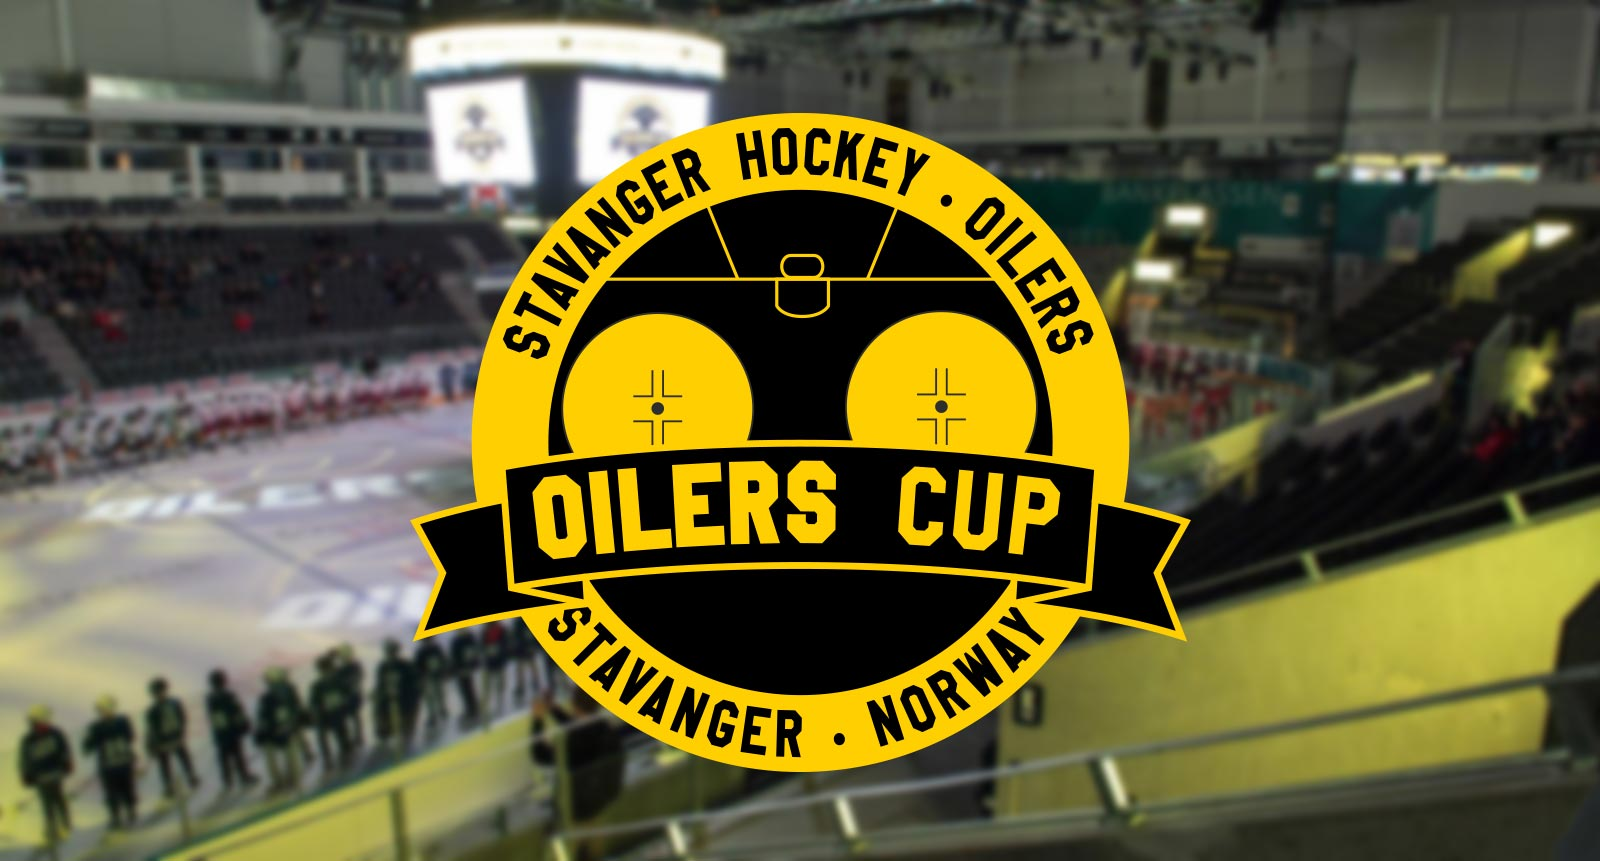 oilers-cup-dnb-arena